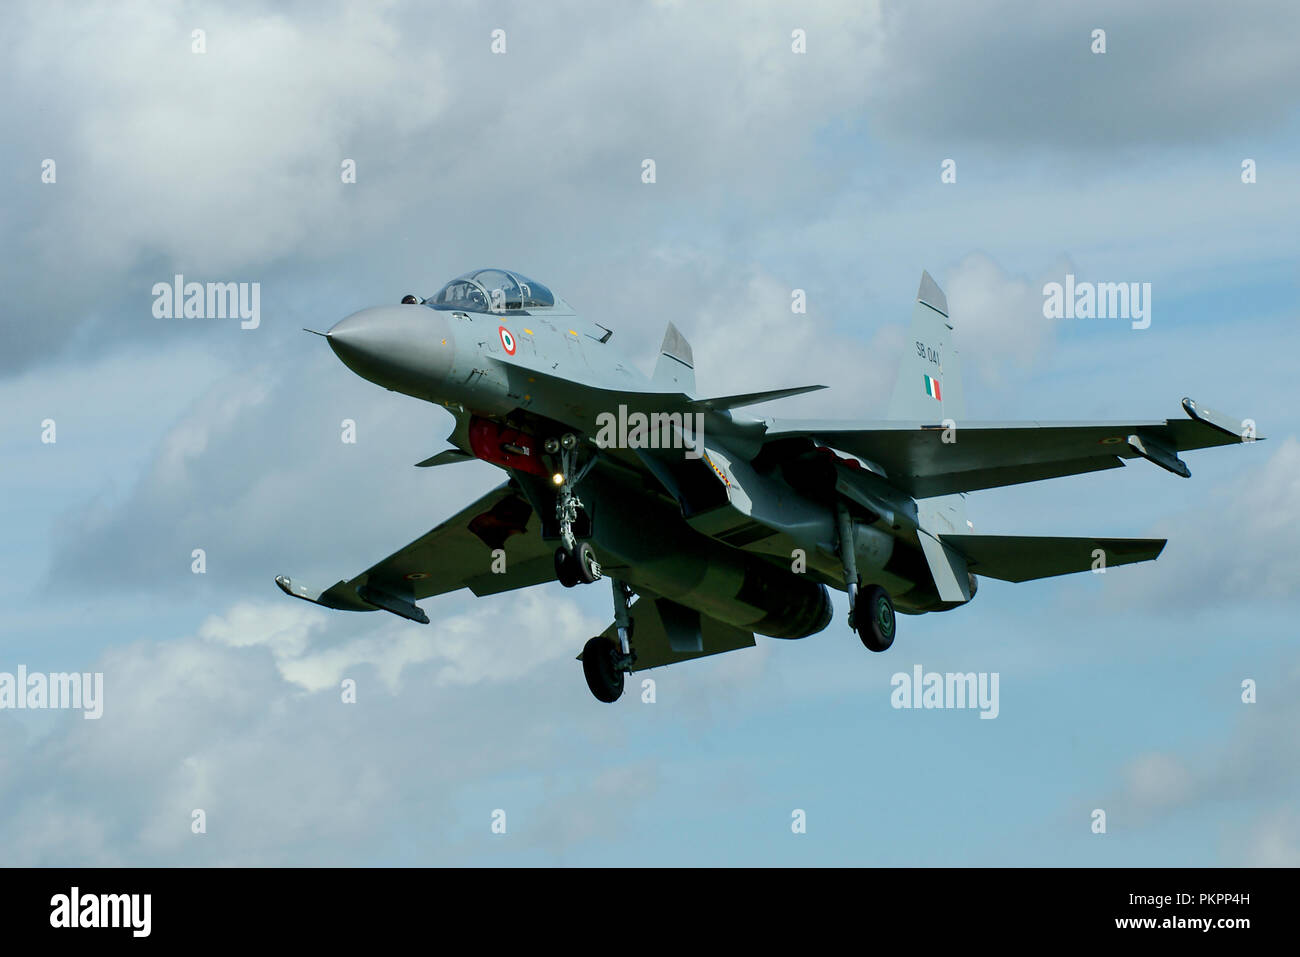 Indian Air Force Sukhoi Su-30MKI fighter jet plane, air superiority fighter. Su30 Flanker H Russian designed, built by Hindustan Aeronautics Limited - Stock Image